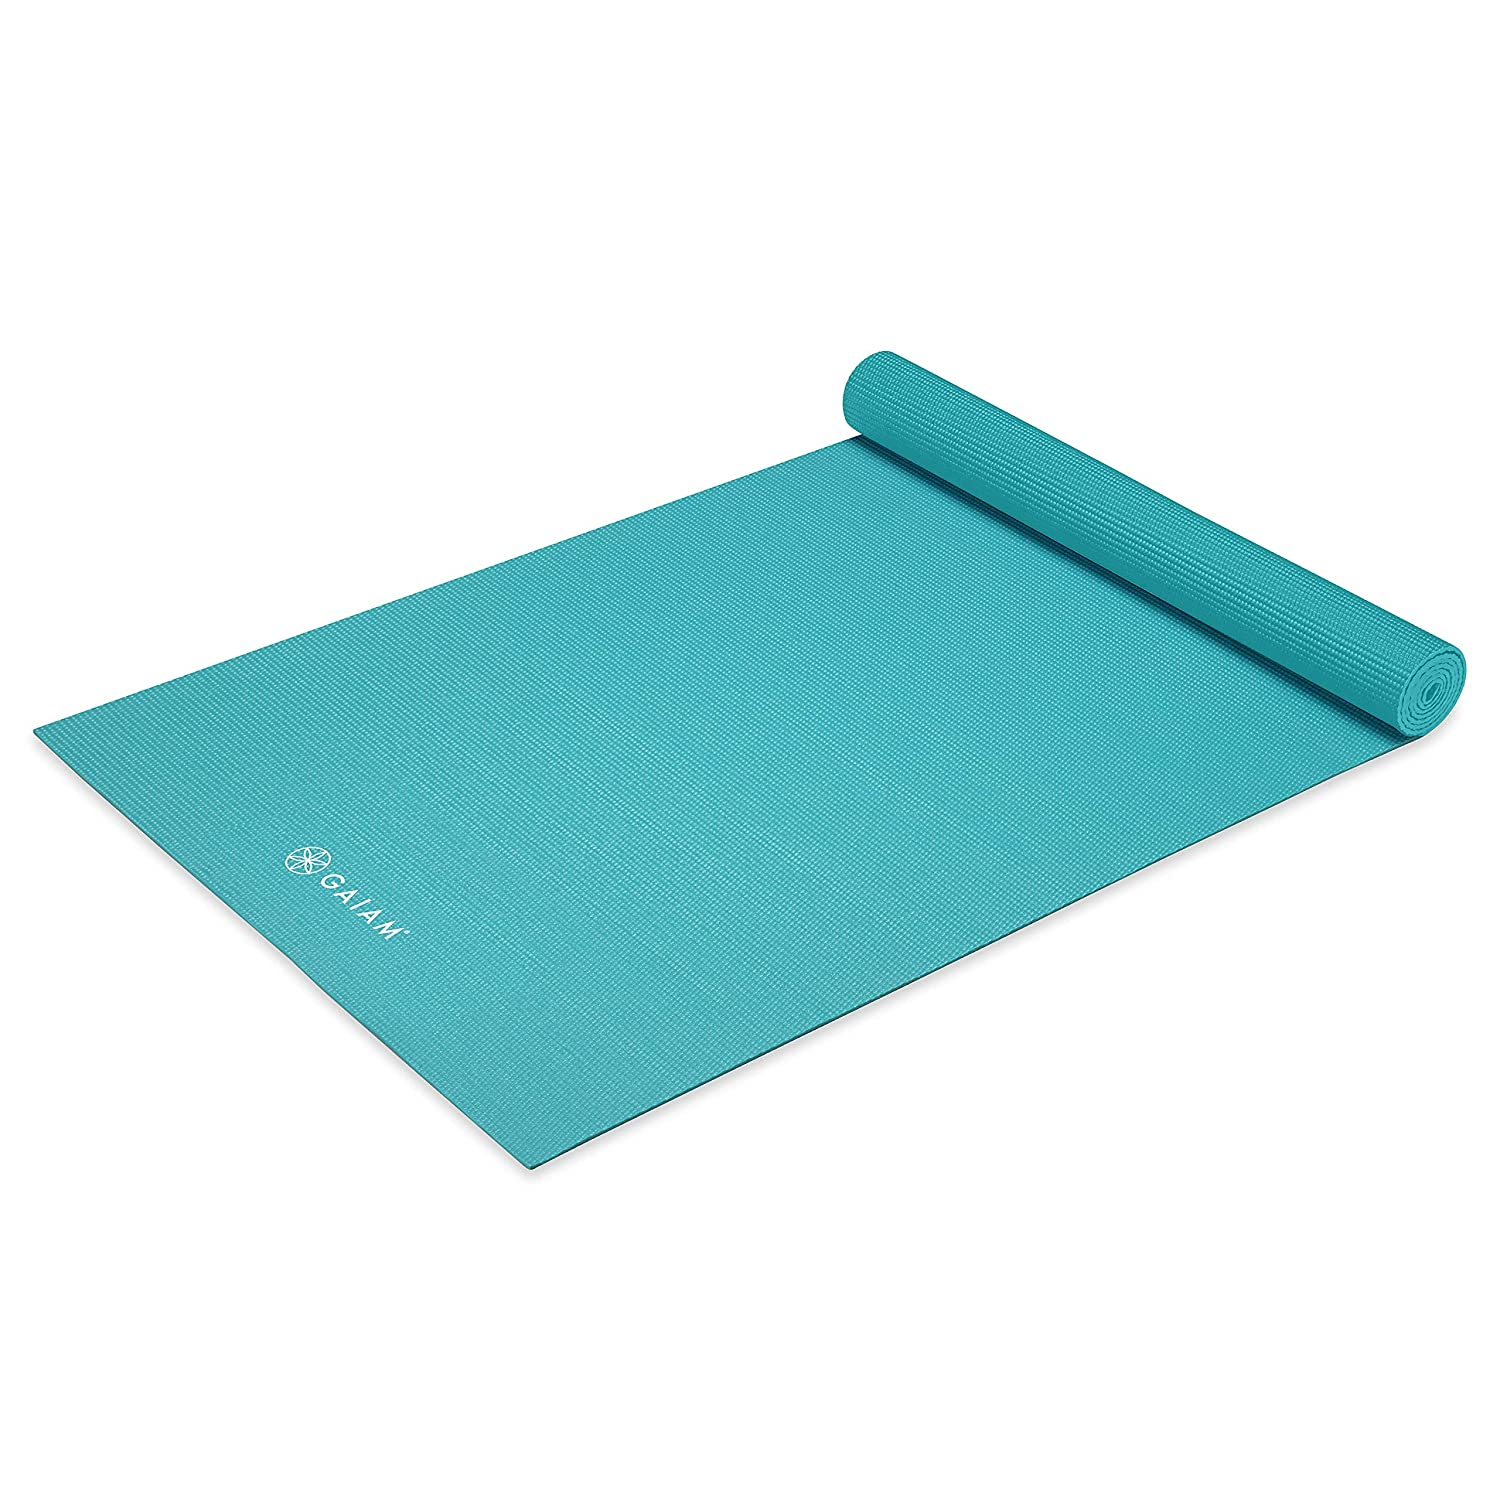 Amazon.com: Estera de yoga Gaiam solida: Sports & Outdoors